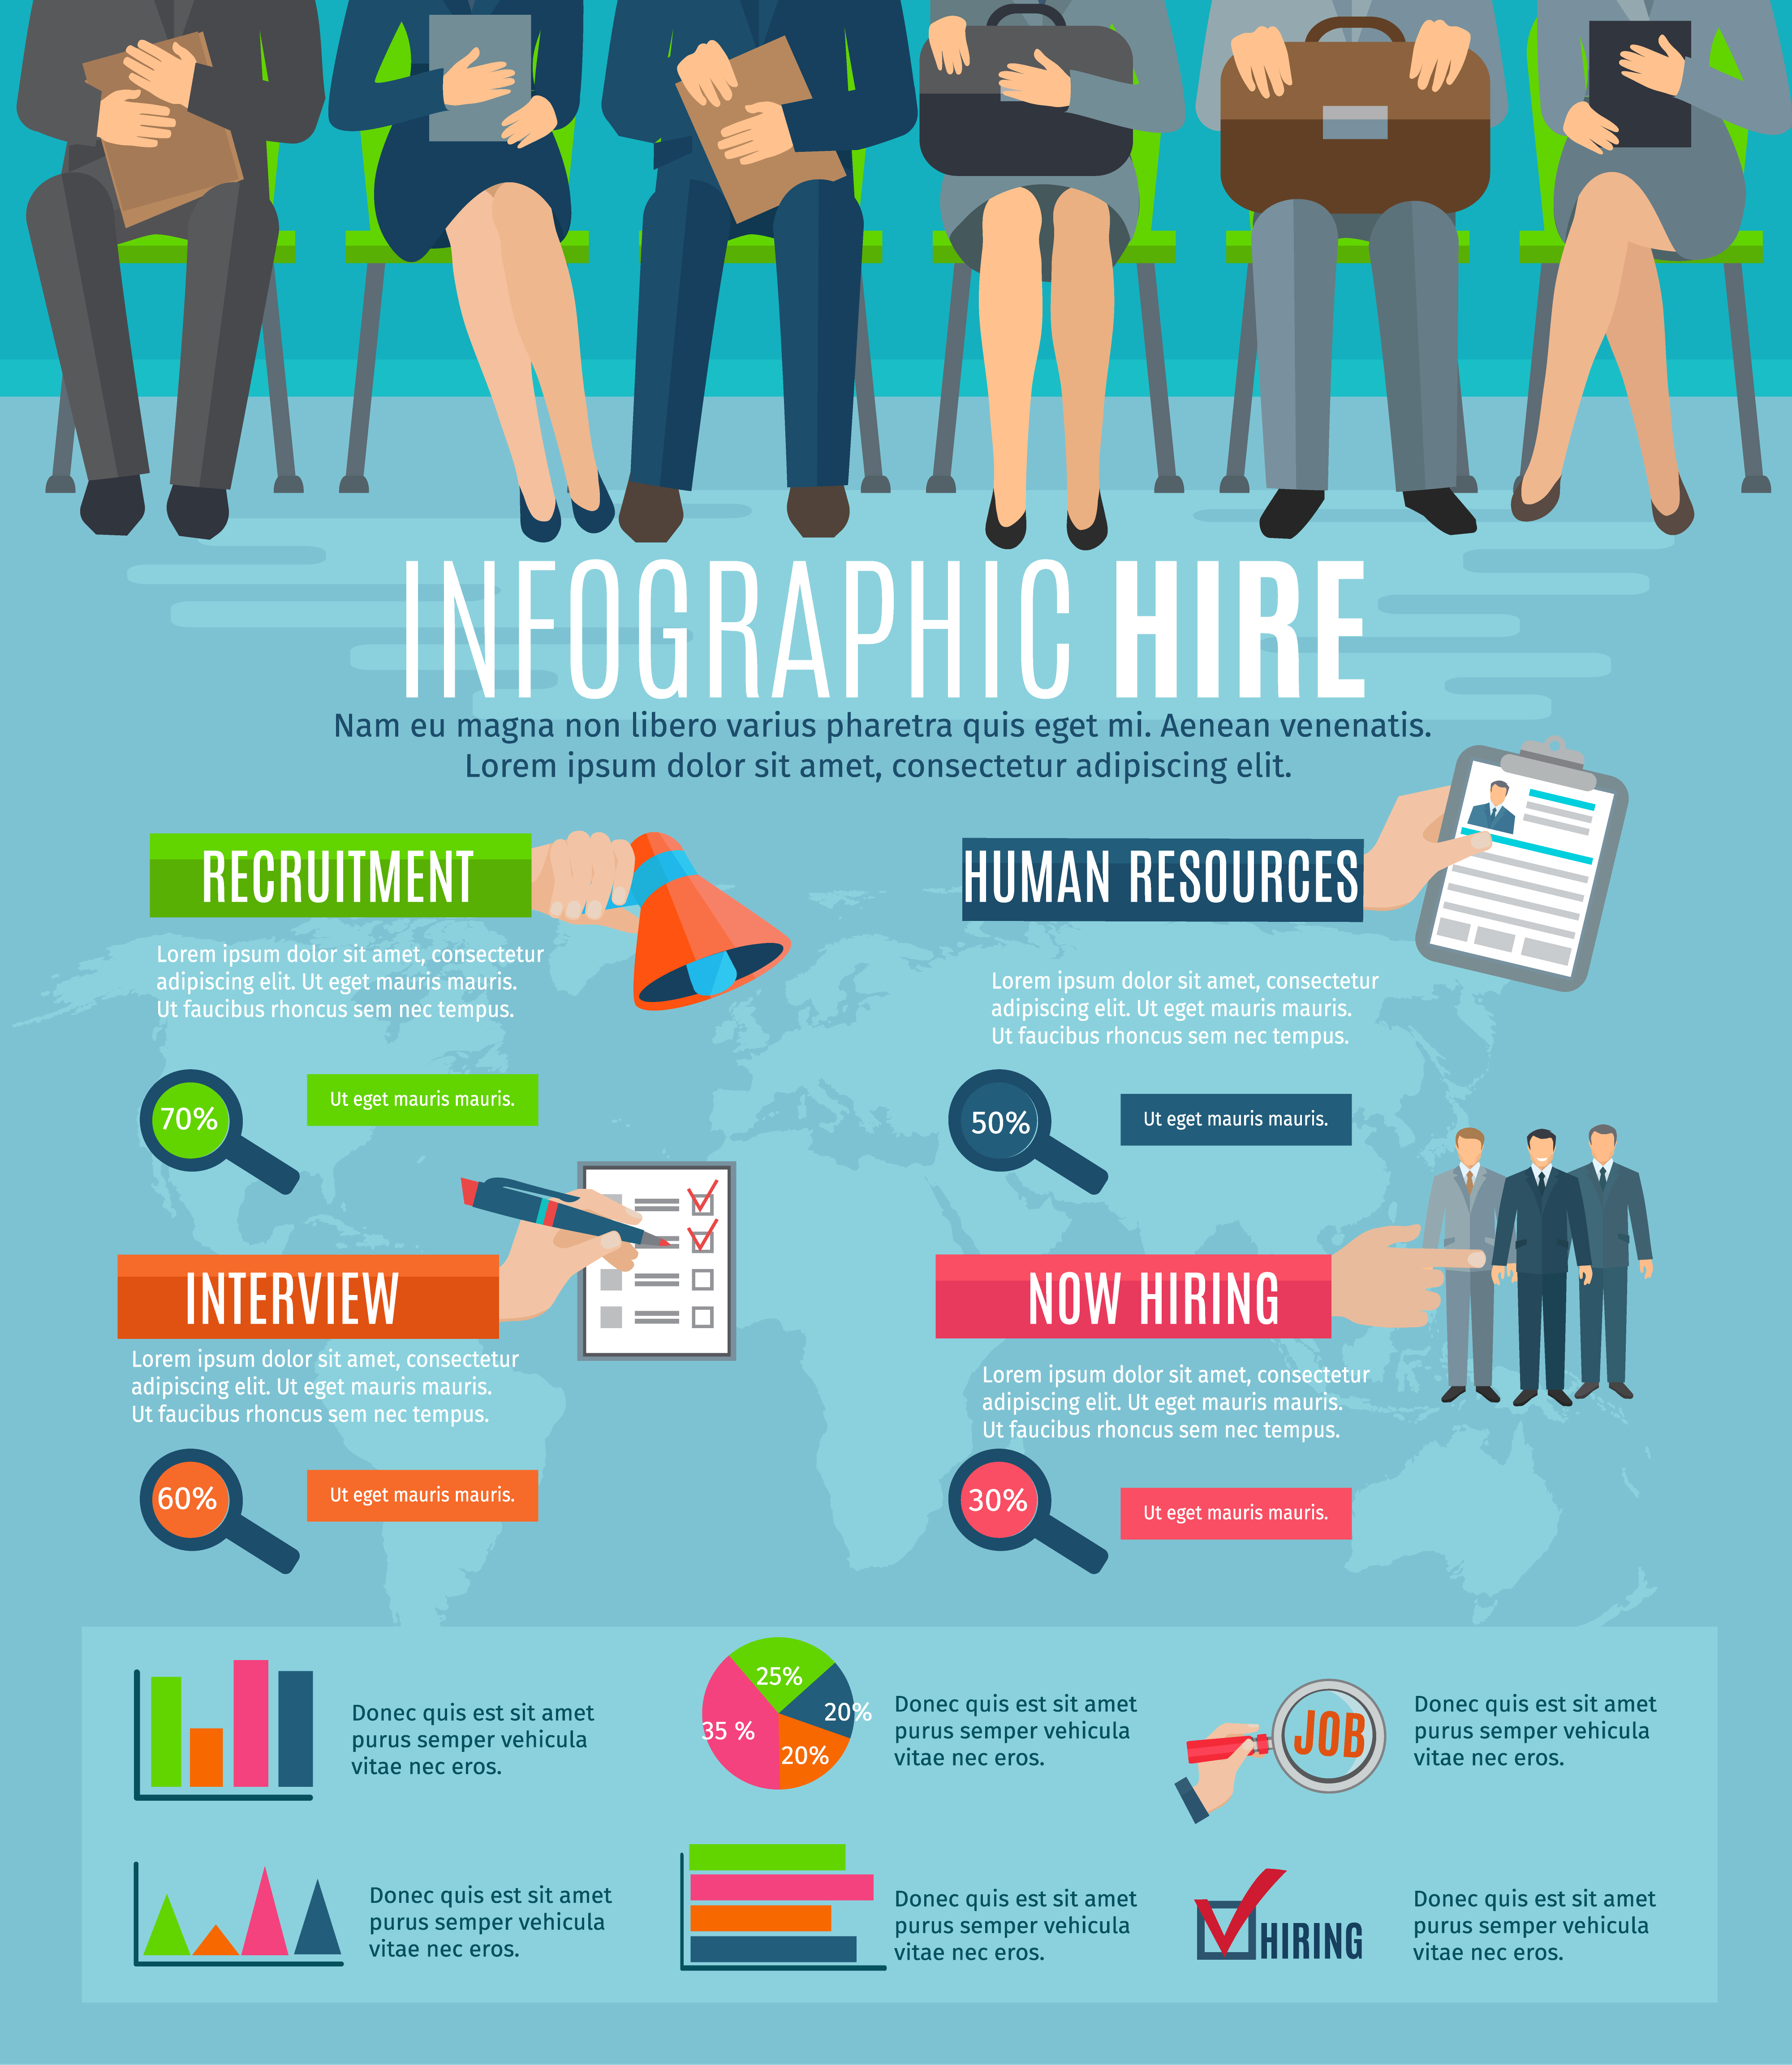 human resources hiring people infographic report